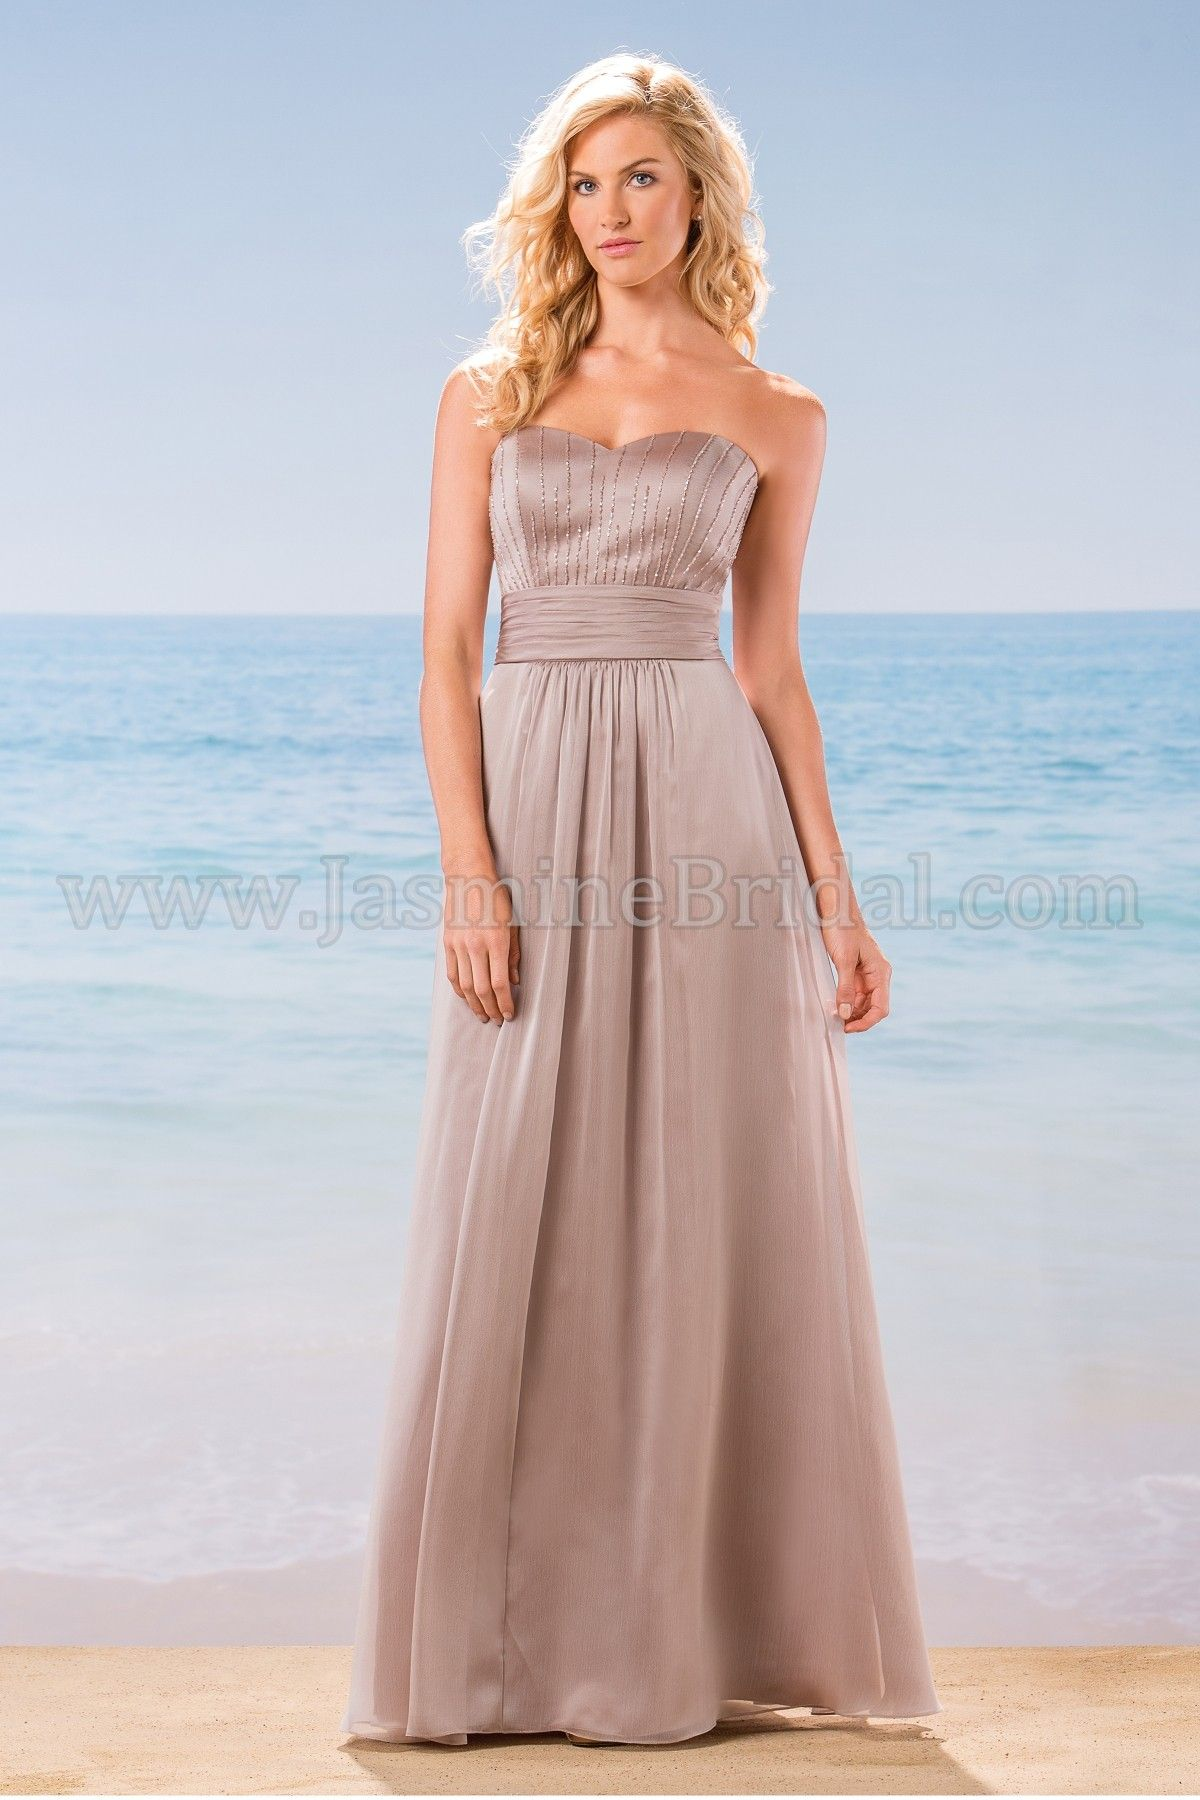 Jasmine bridal bridesmaid dress belsoie style l184006 in taupe jasmine bridal bridesmaid dress belsoie style l184006 in taupe ombrellifo Images